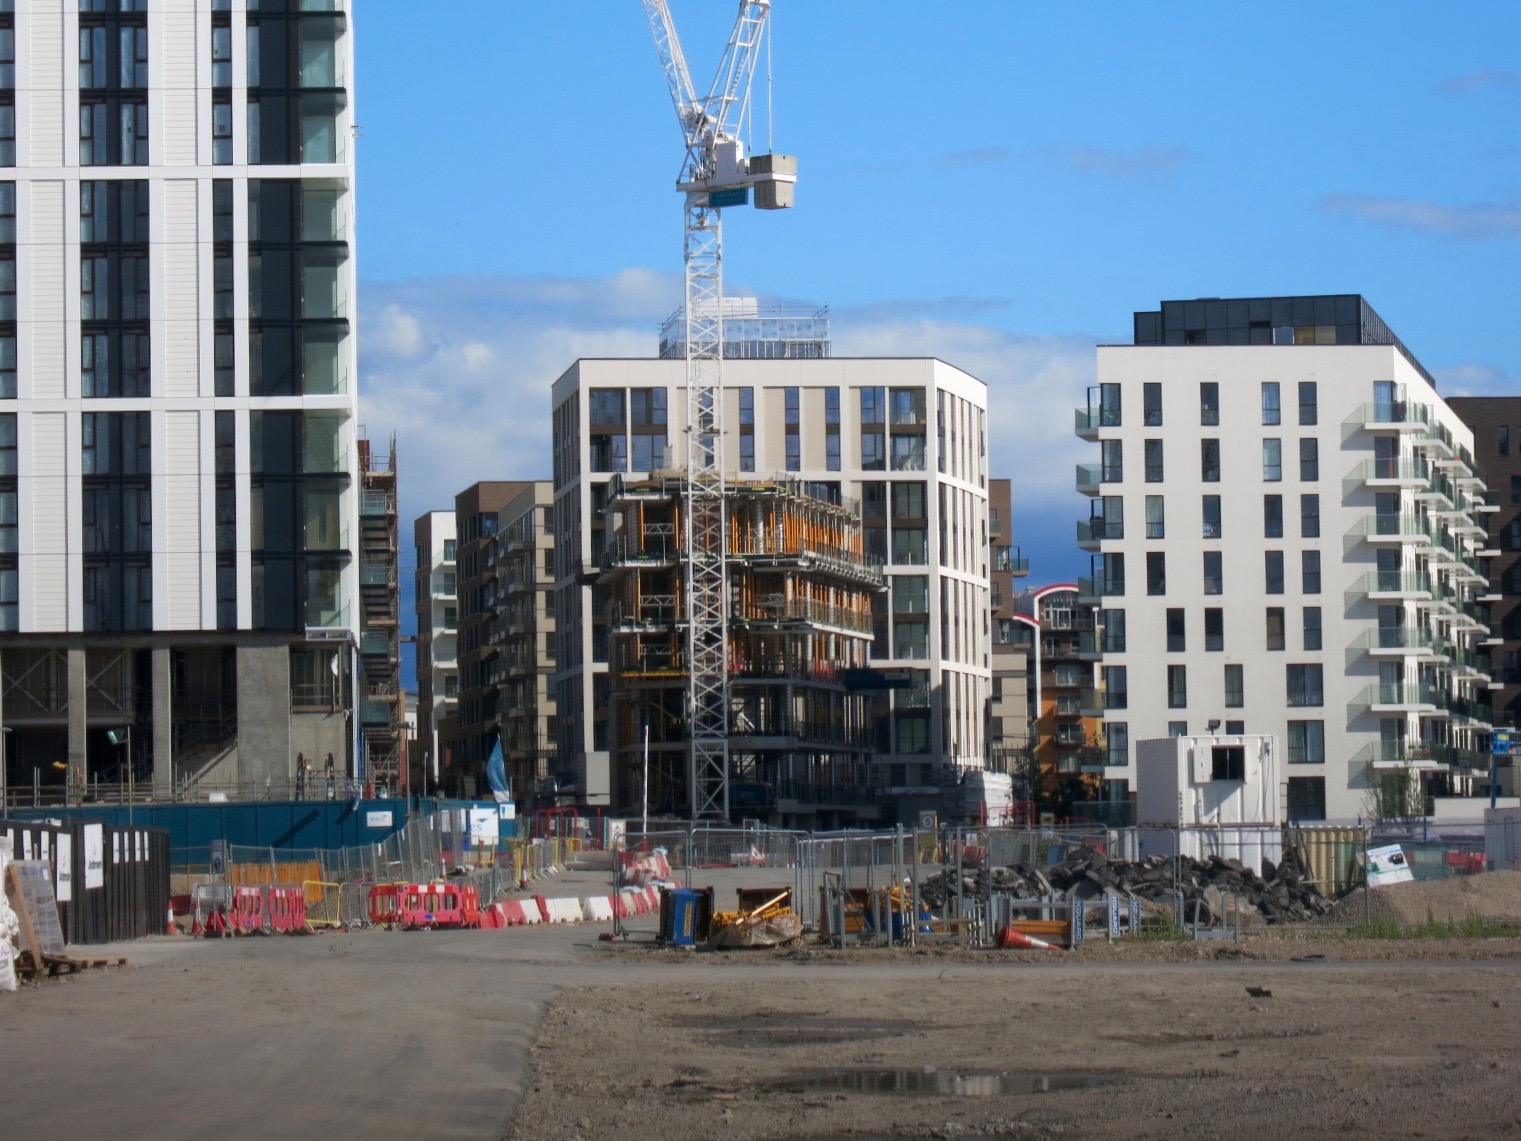 The Fulmar nears completion, south of The Aperture building -  July 2016  [greenpen.london]